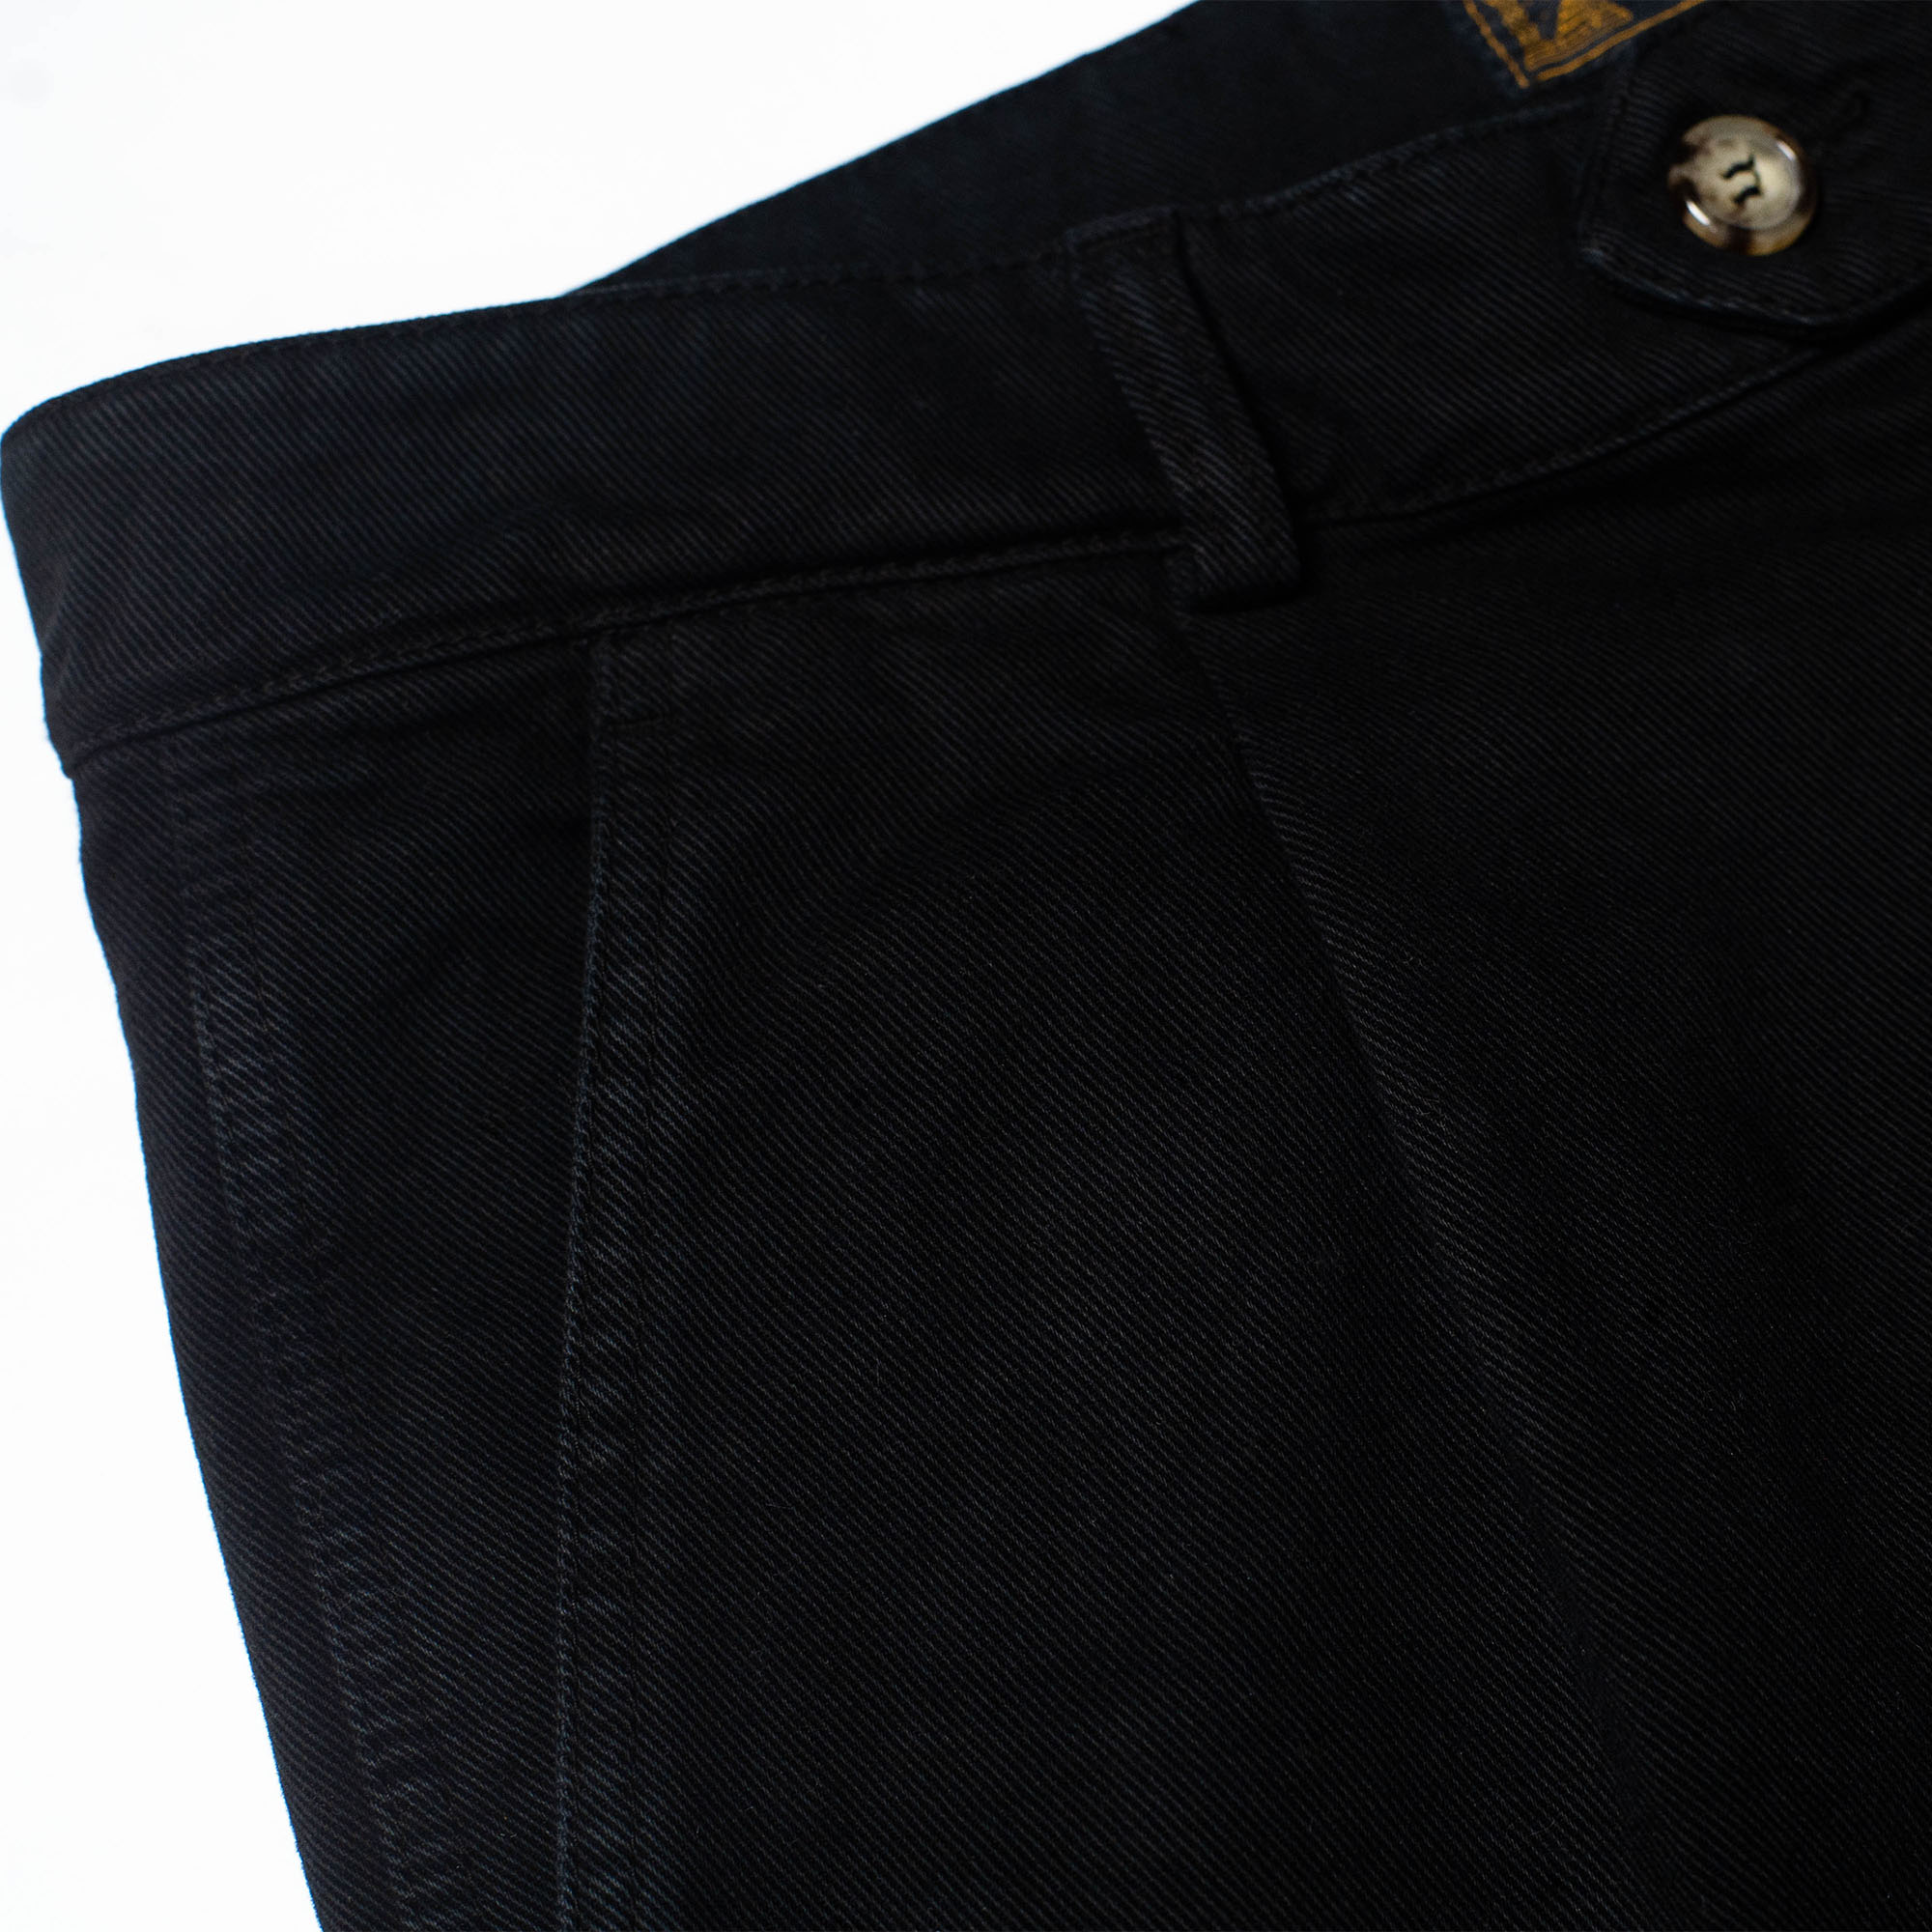 shangri-la-heritage-explorator-black-cotton-twill-pants-still-life-front-pocket